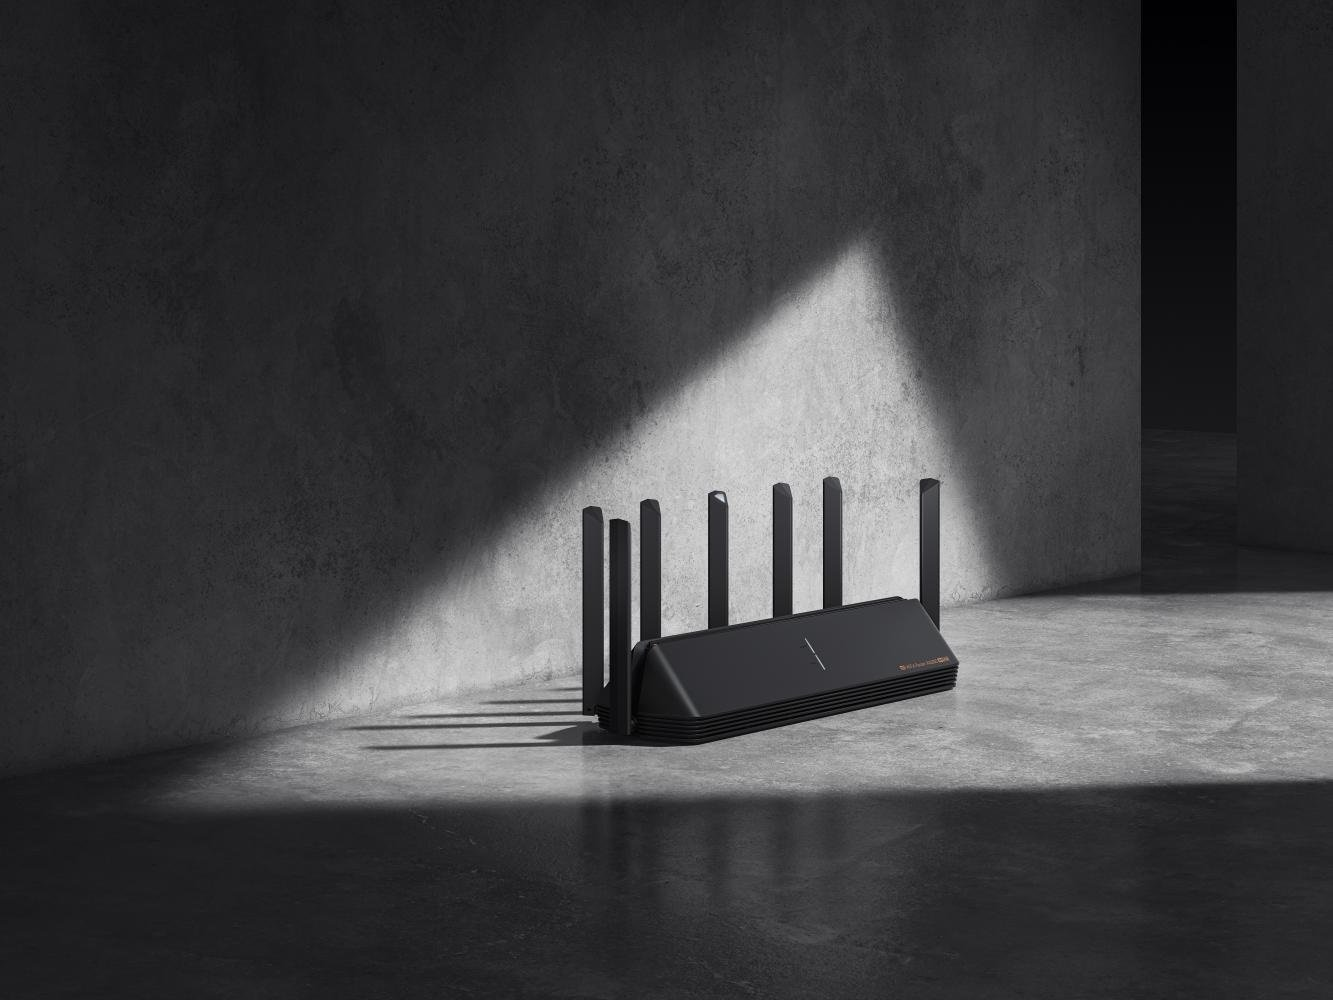 Xiaomi finally Released Mi Router AX6000 With Wi-Fi 6 Support In China